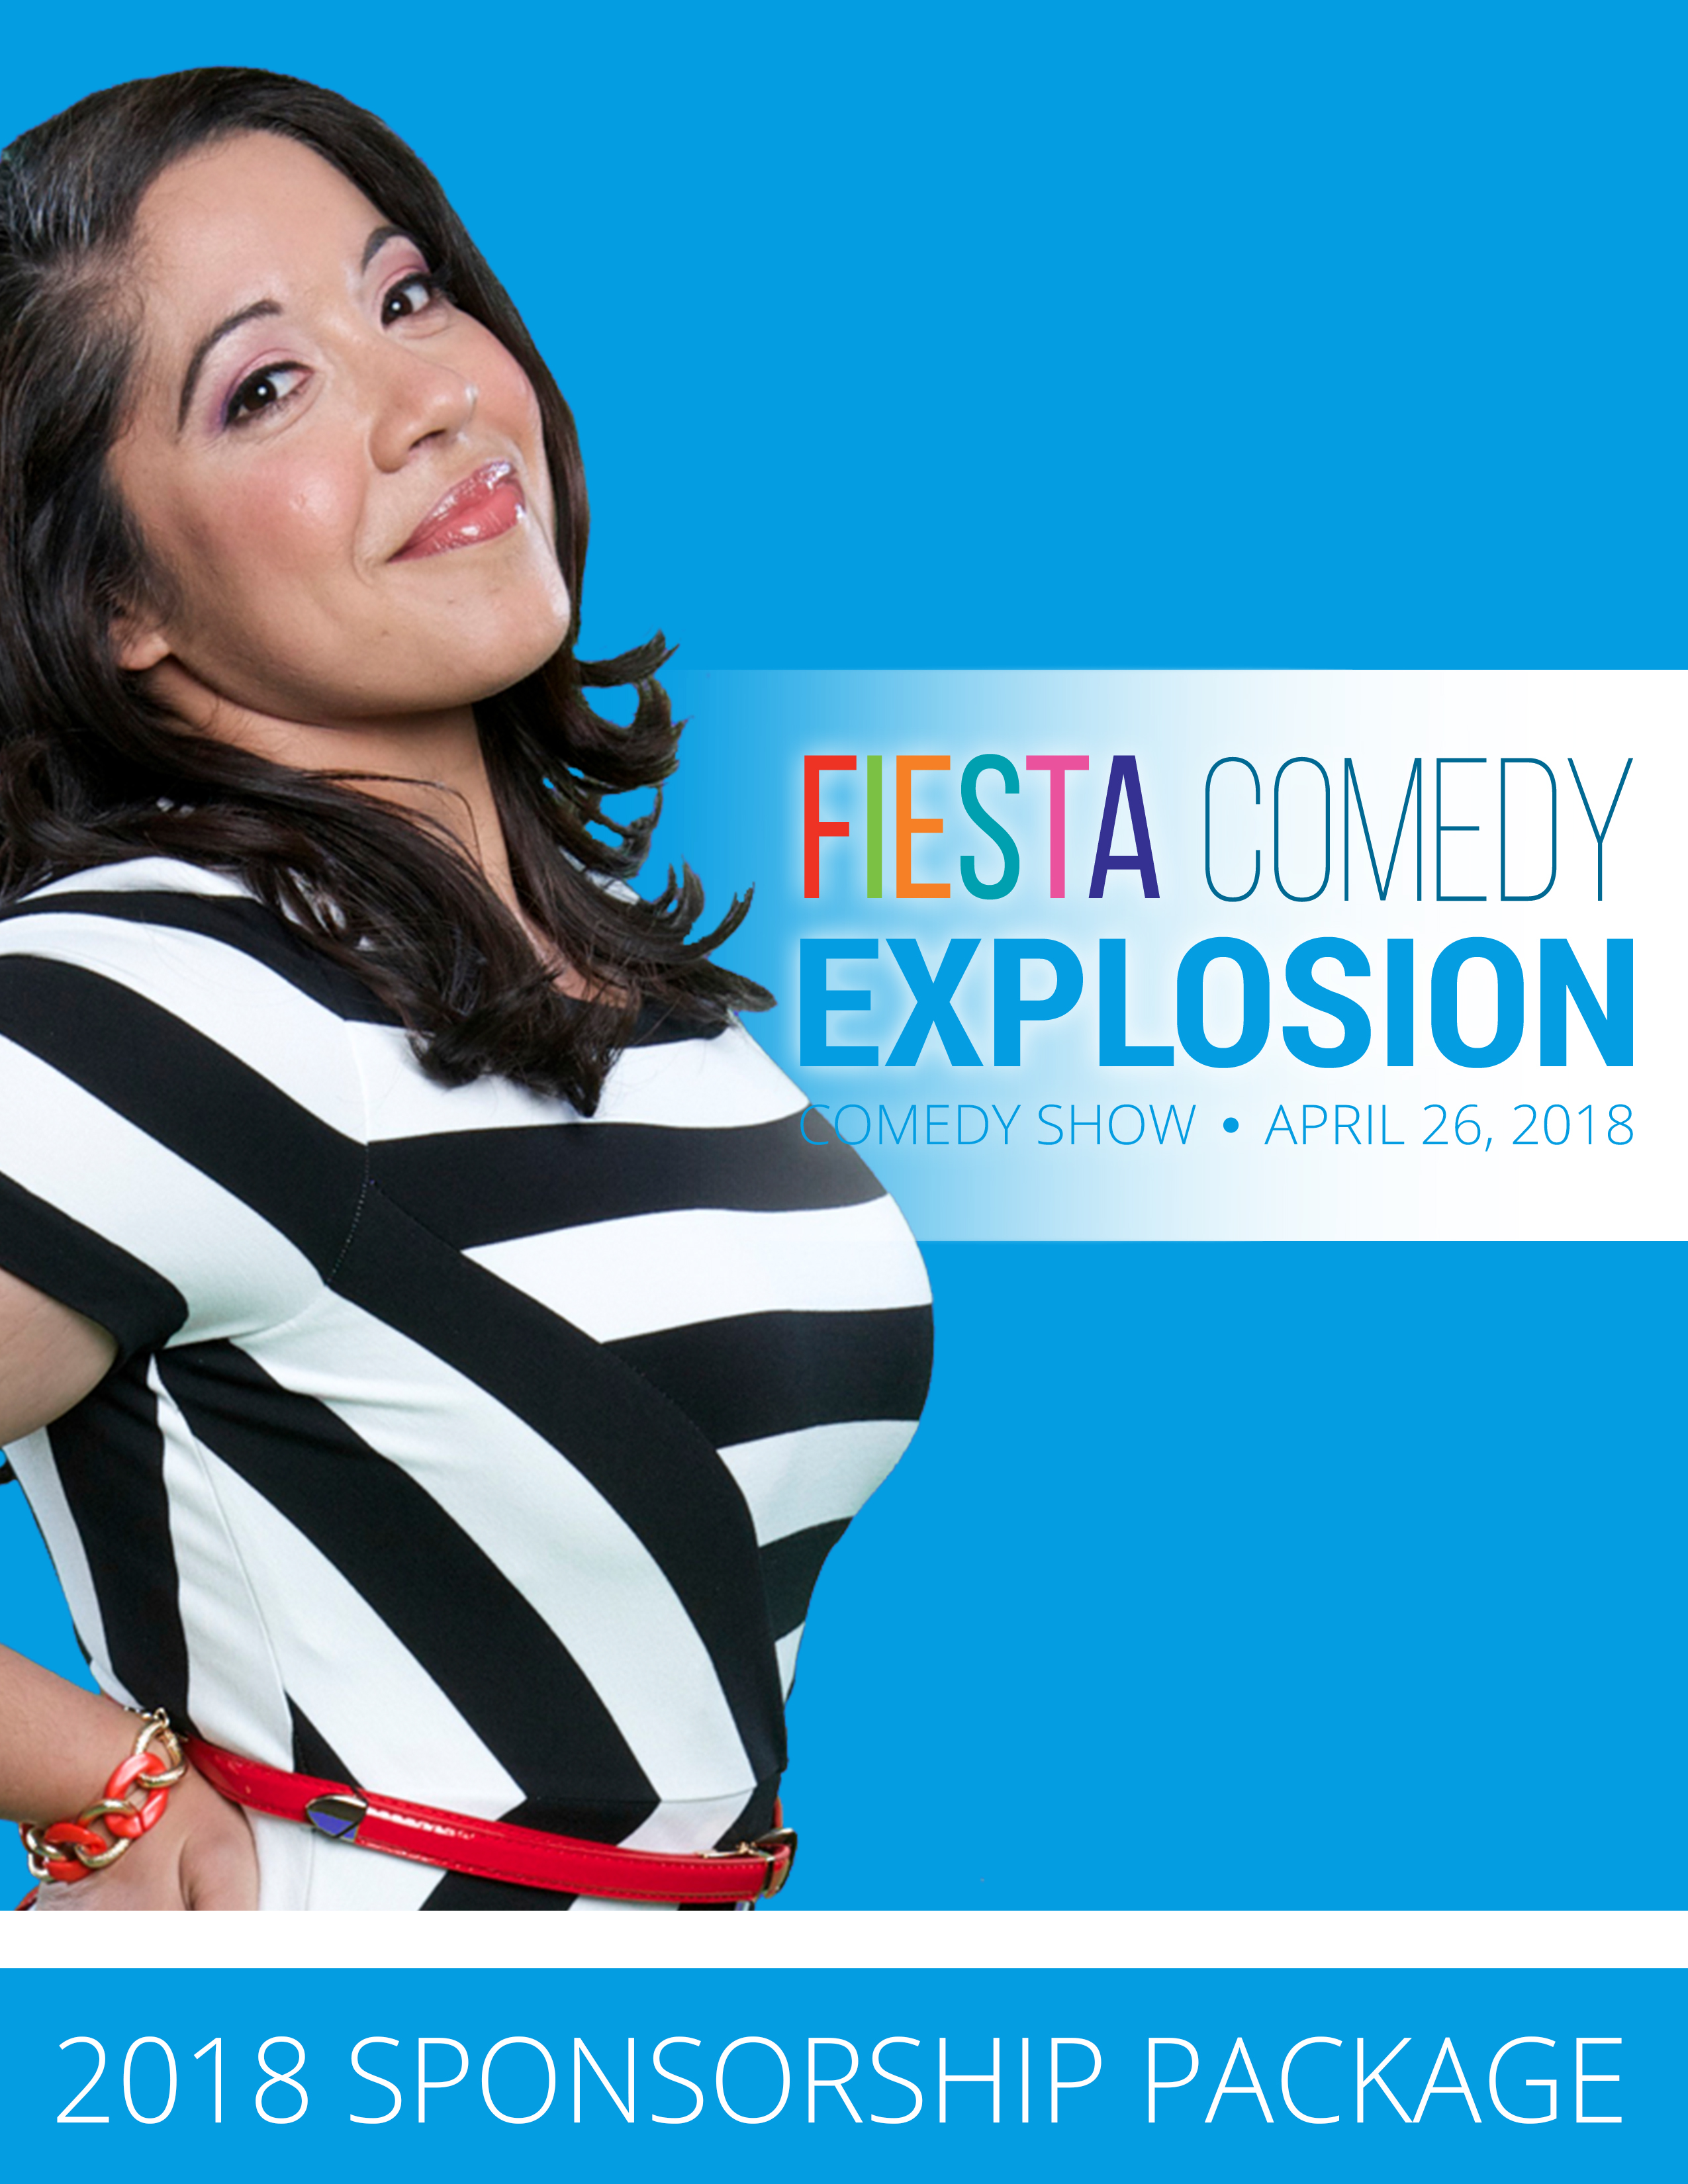 Fiesta Comedy Explosion Sponsorship Package Cover Image | Fiesta San Antonio | Official Priest Holmes Foundation Website | Priest Holmes Son | Priest Holmes Girlfriend | Priest Holmes Wife | Priest Holmes Engaged | Priest Holmes Family | Priest Holmes is Engaged